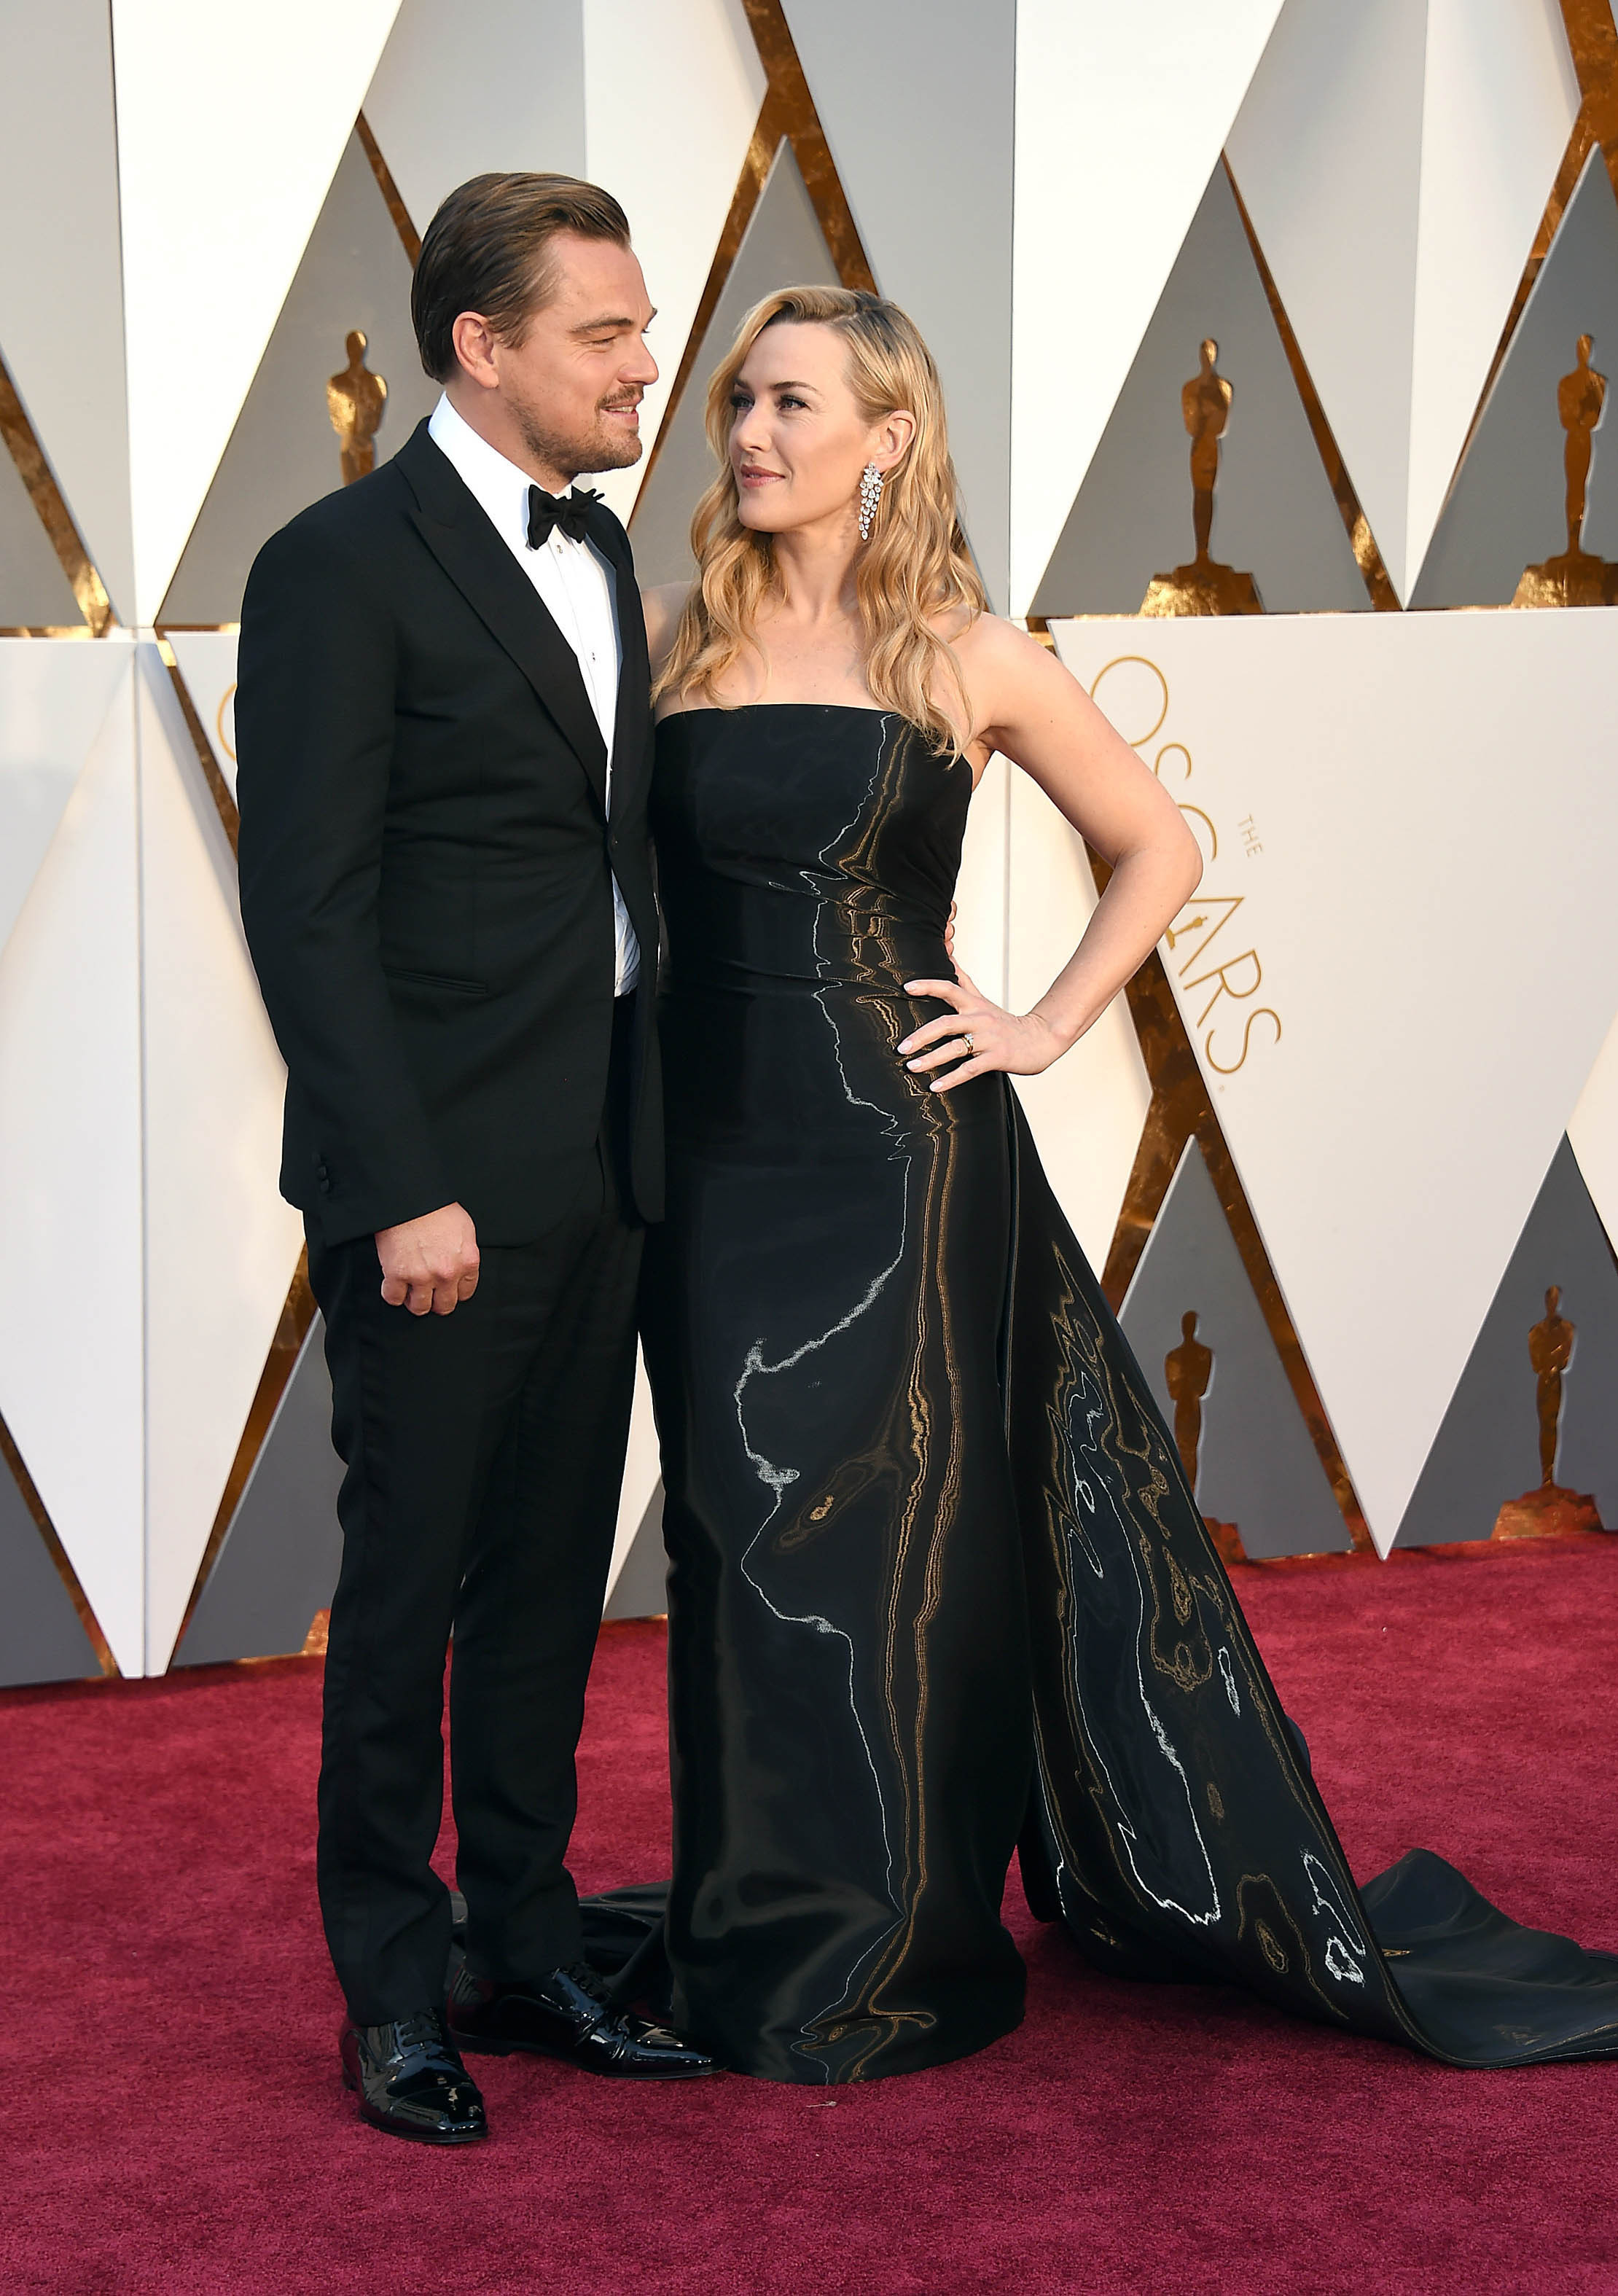 Photo by: KGC-11/starmaxinc.com STAR MAX Copyright 2016 ALL RIGHTS RESERVED Telephone/Fax: (212) 995-1196 2/28/16 Leonardo DiCaprio and Kate Winslet at the 88th Annual Academy Awards (Oscars). (Hollywood, CA, USA)